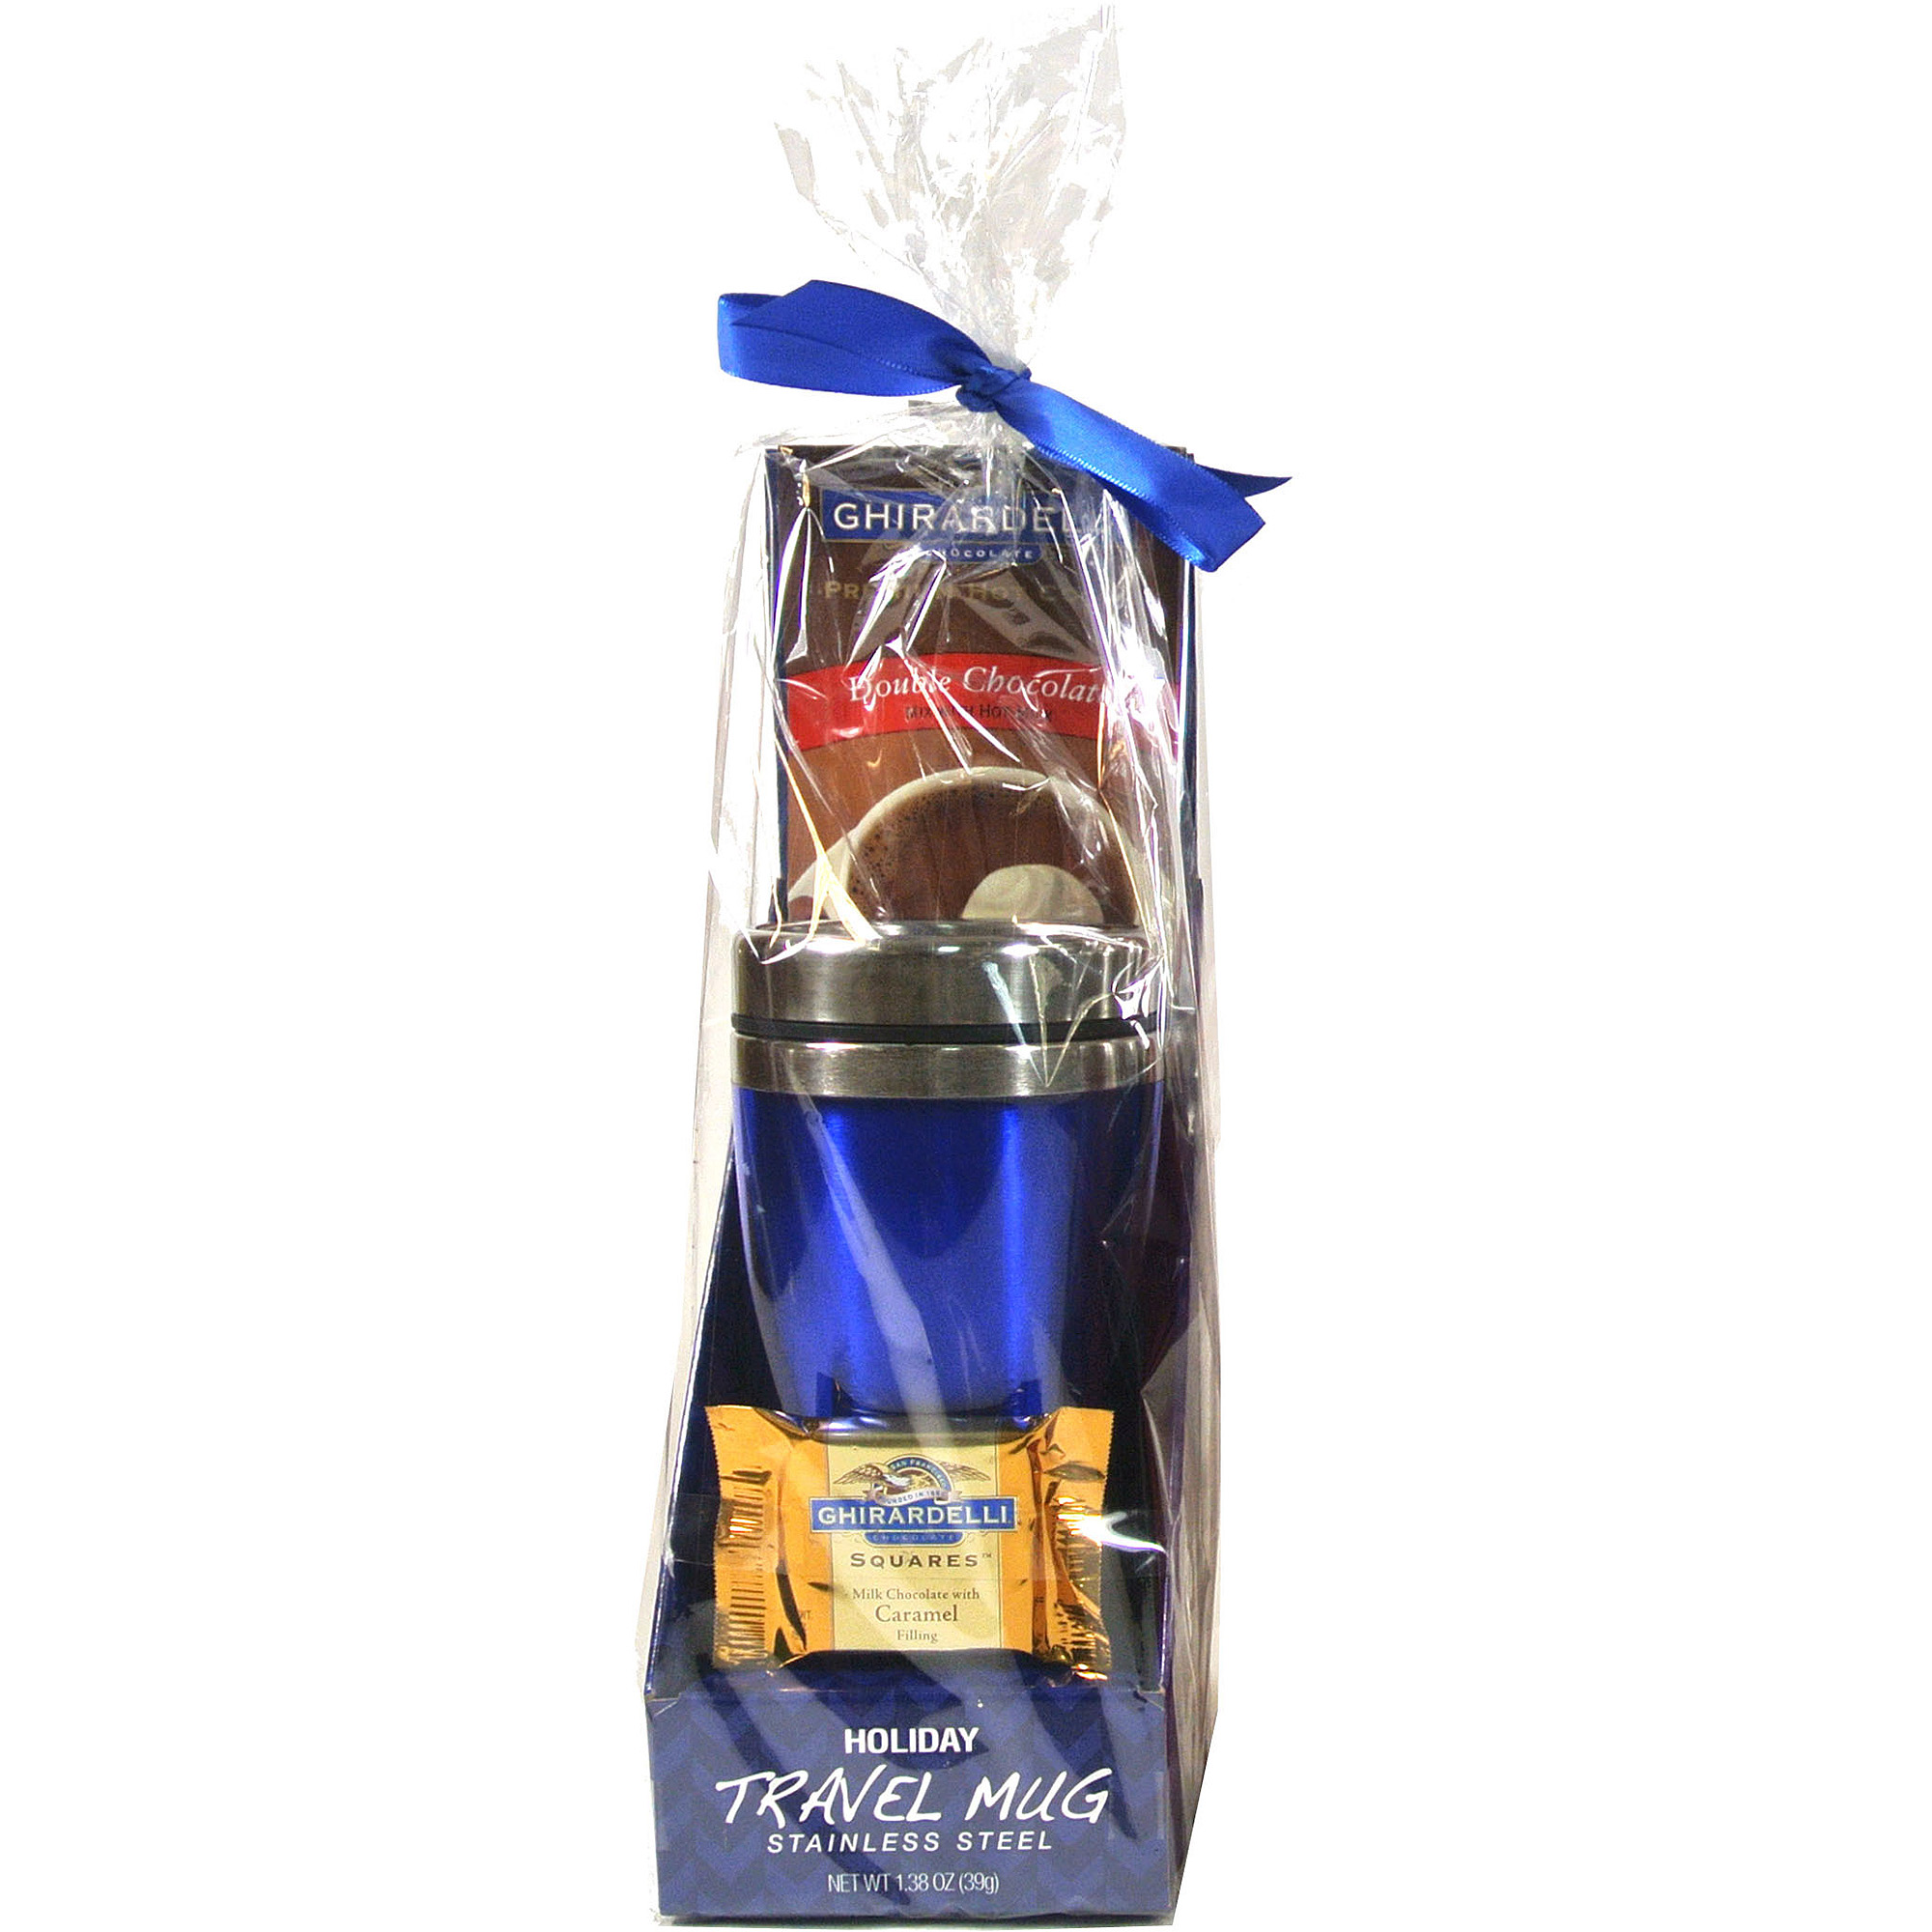 Ghirardelli Holiday Travel Mug Gift Set with hot cocoa and chocolate square ( color will vary)